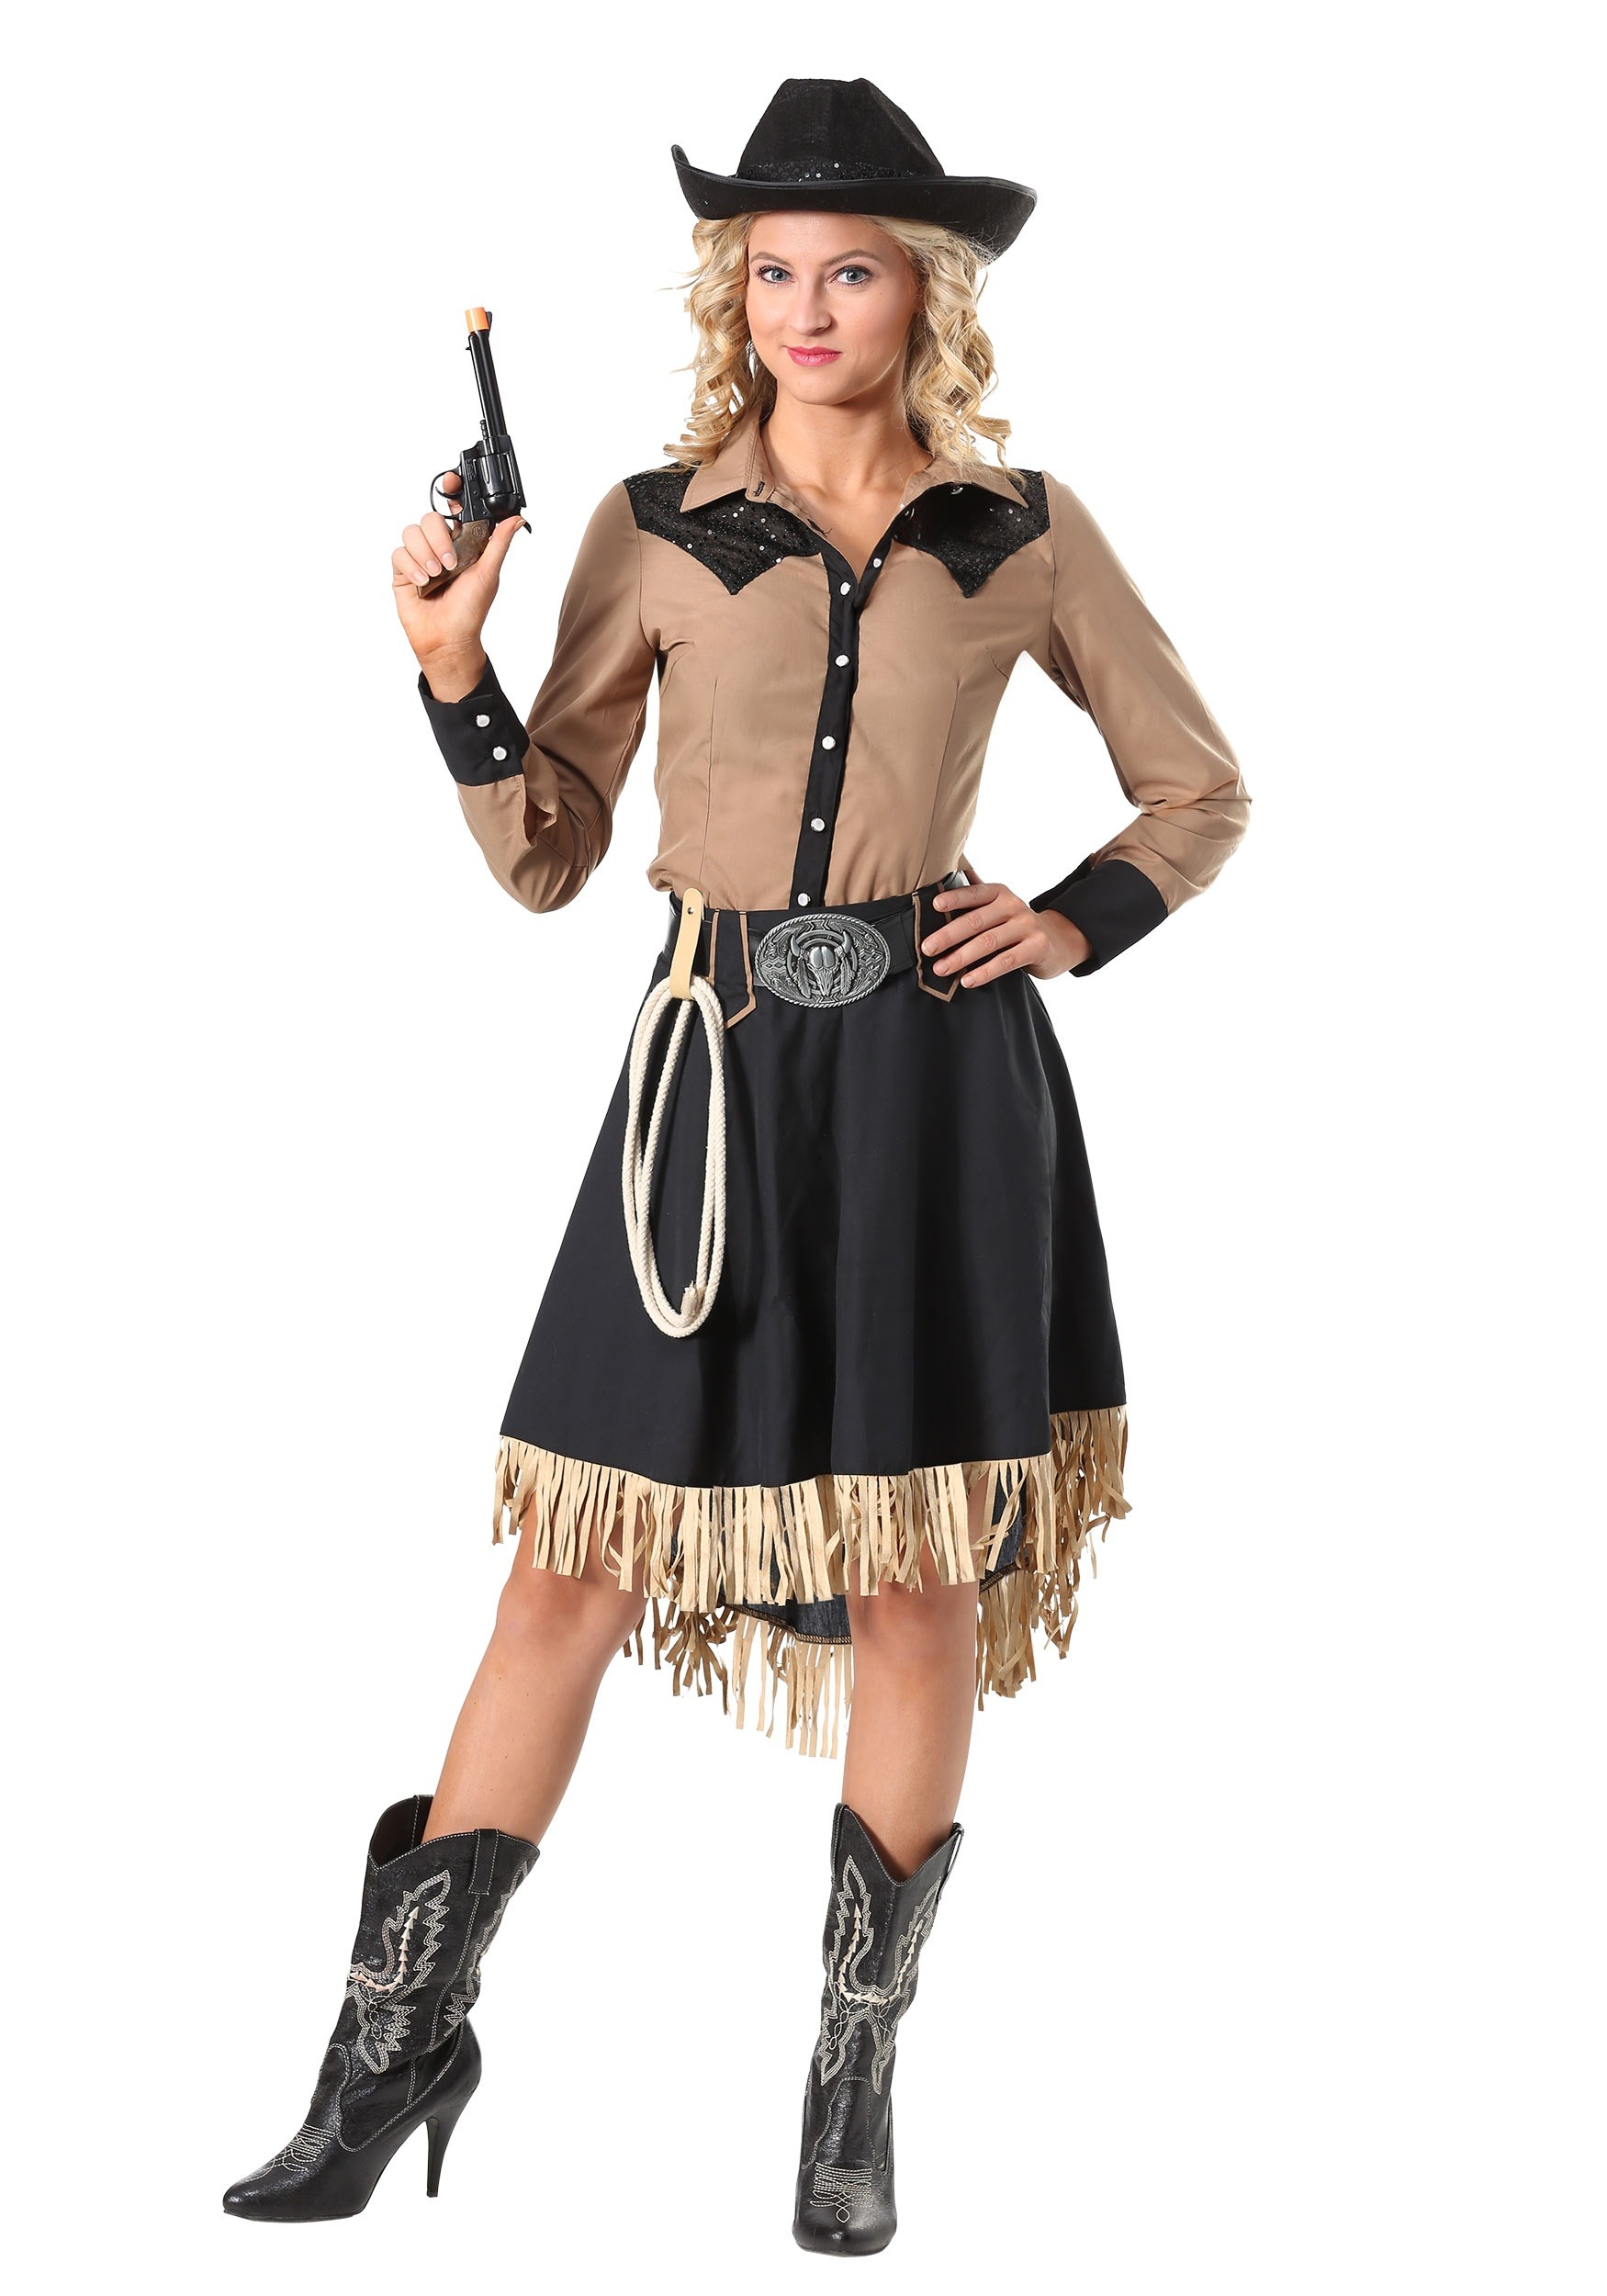 Lassou0026#39;n Cowgirl Plus Size Costume for Women